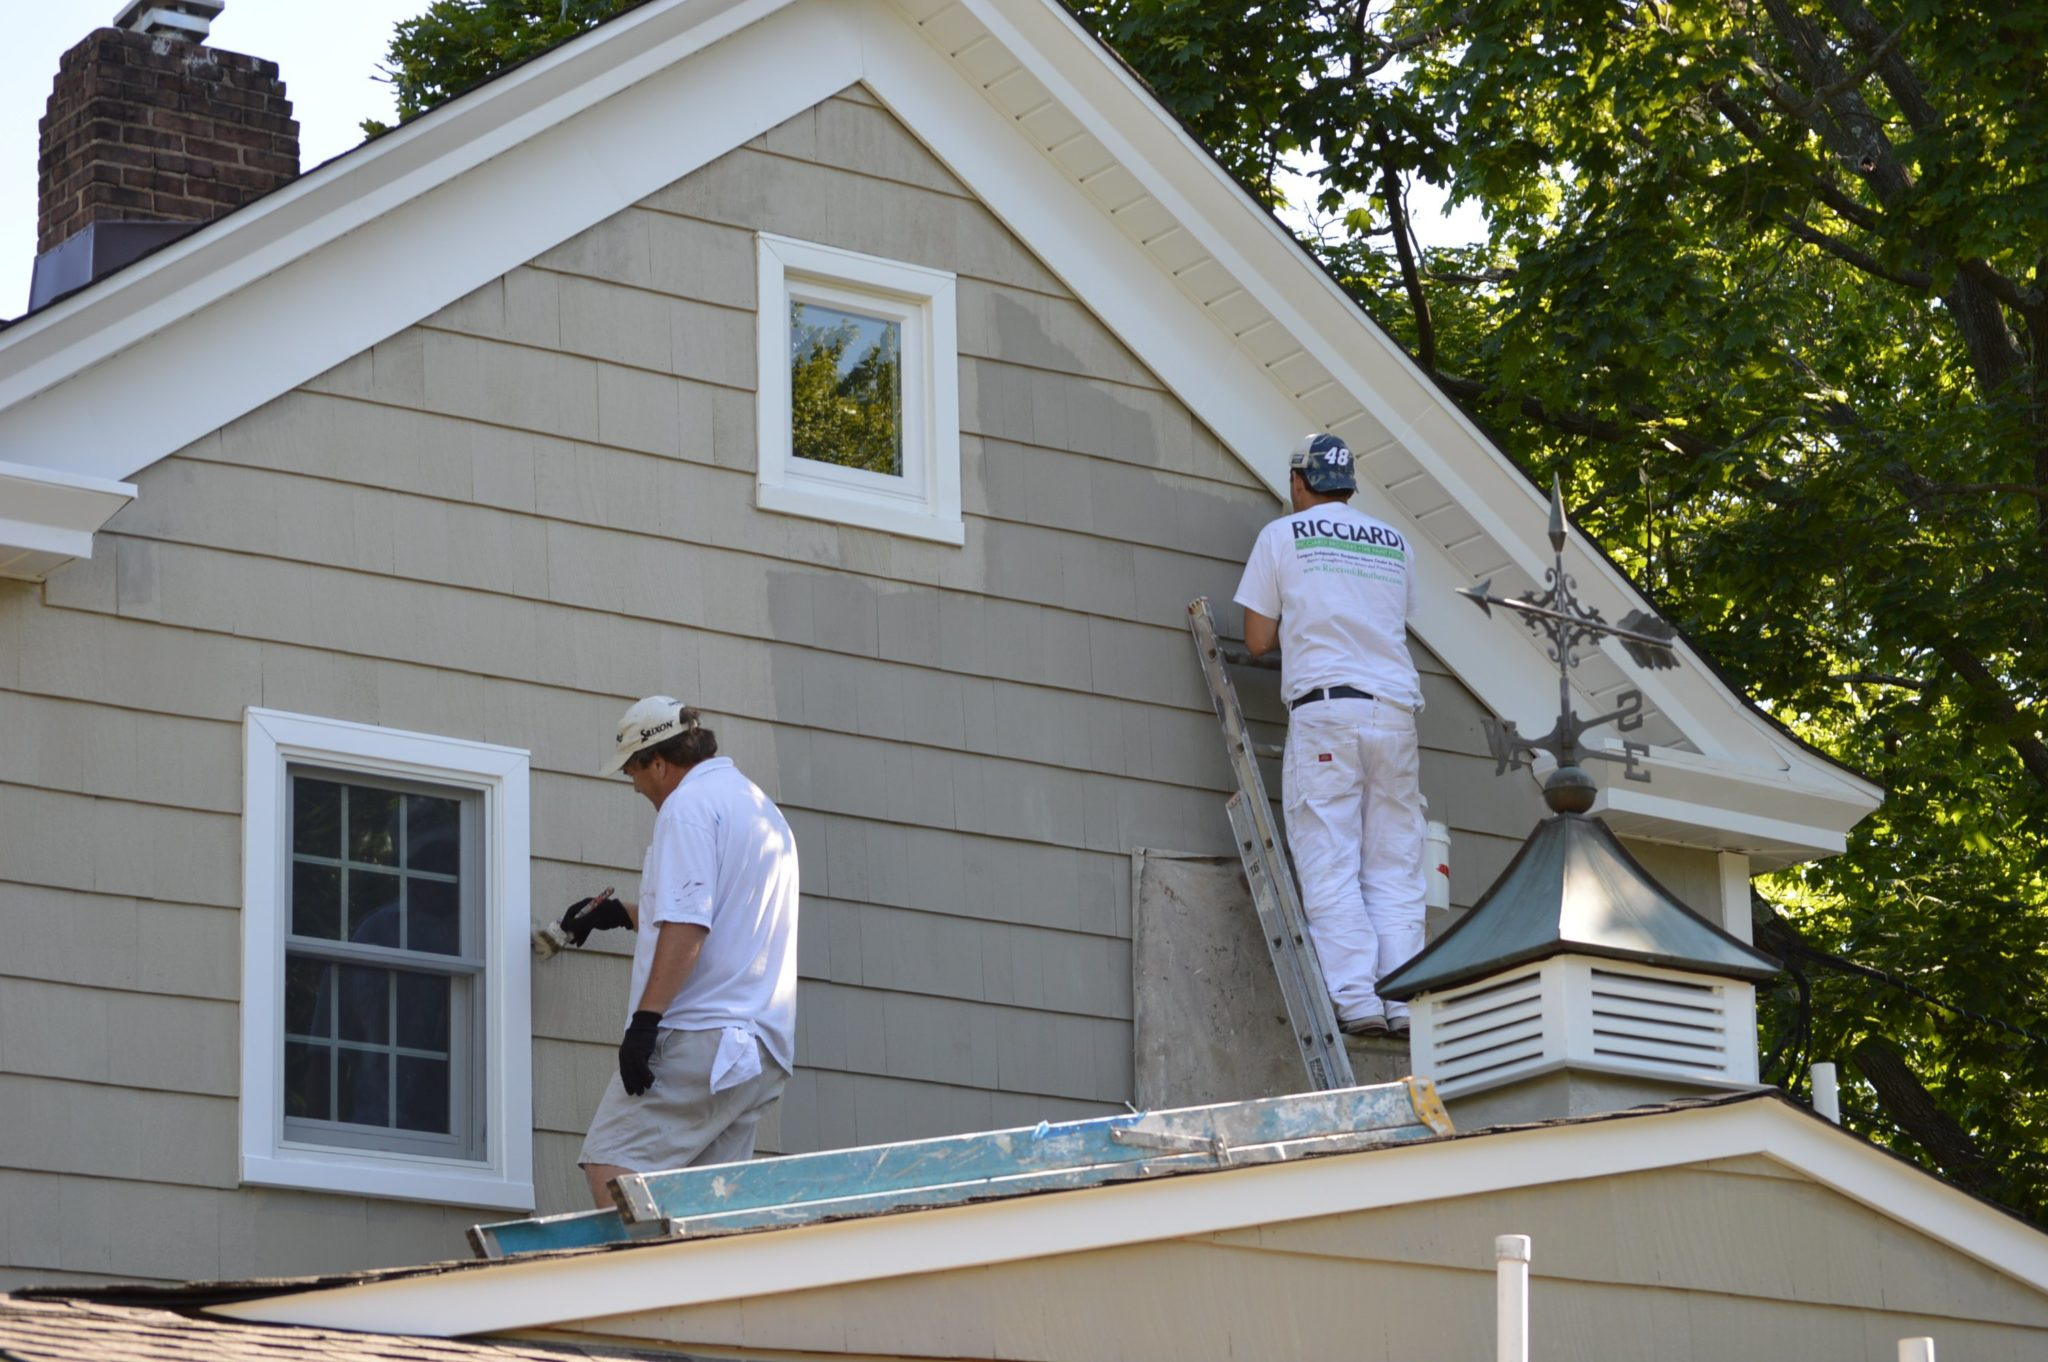 Exterior Painting How To Get Picture Perfect Results - Exterior-house-painter